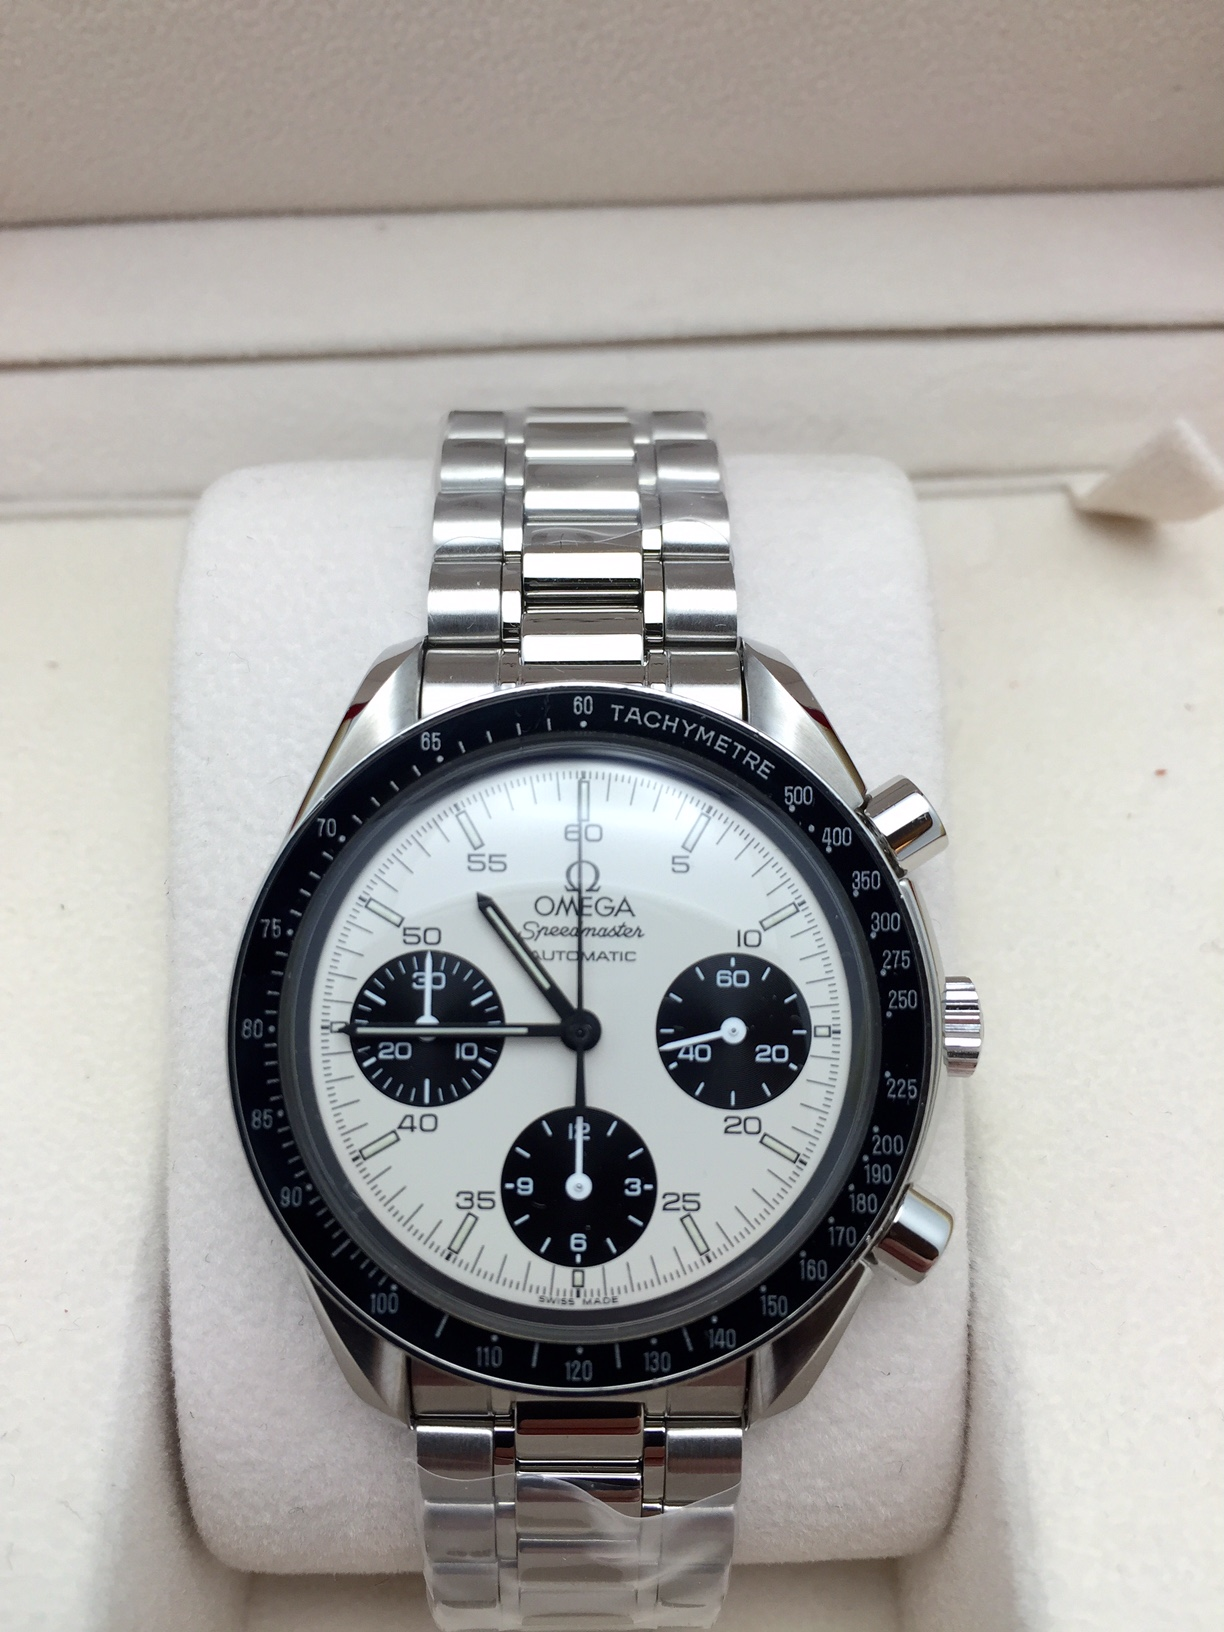 speedmaster panda date Find great deals on ebay for omega speedmaster dial see more like this omega speedmaster date automatic black dial new listing omega speedmaster panda 1750043.